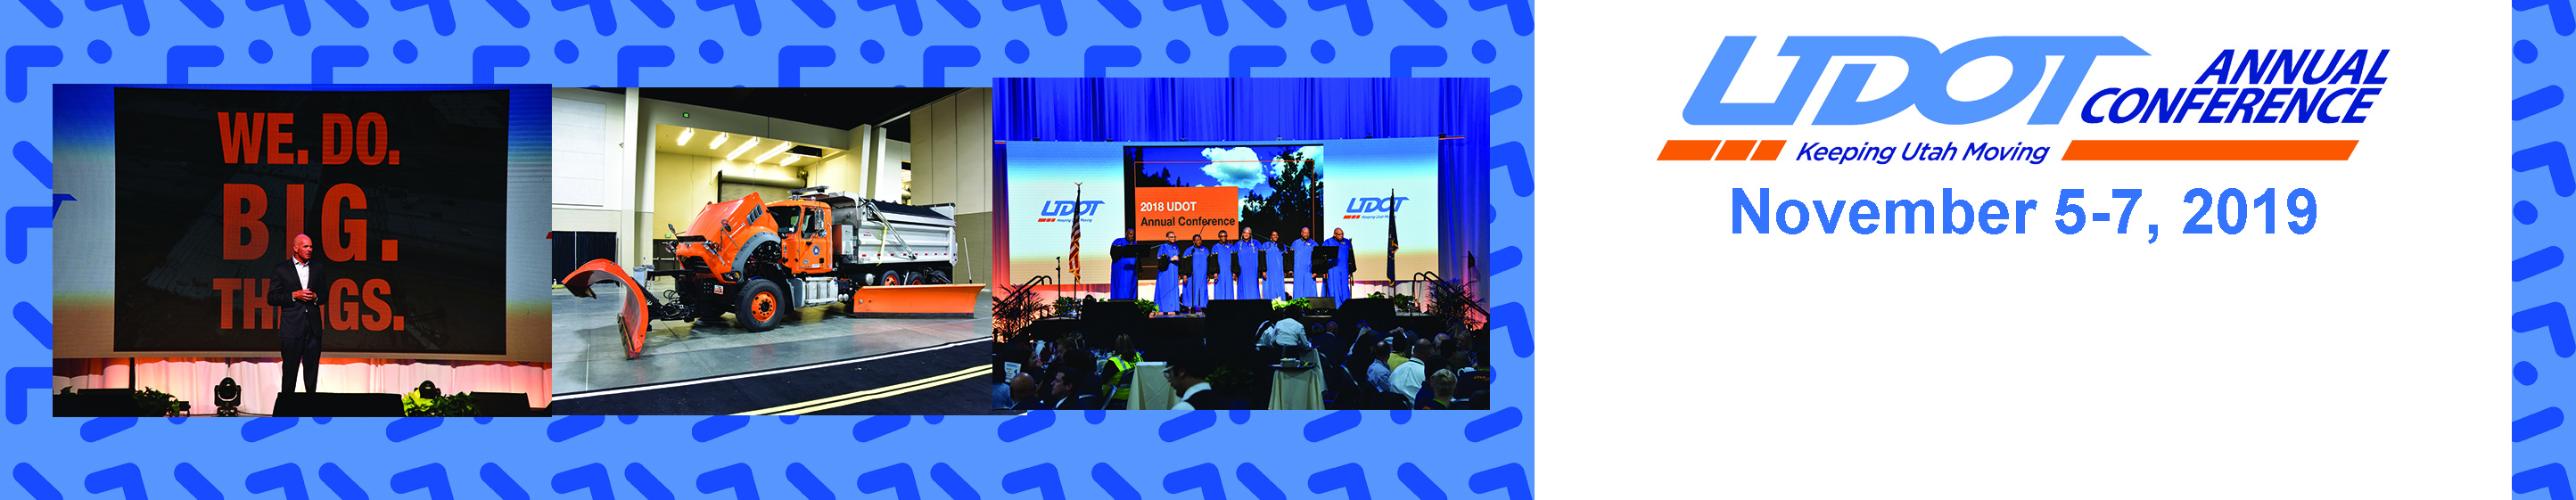 UDOT Annual Conference 2019